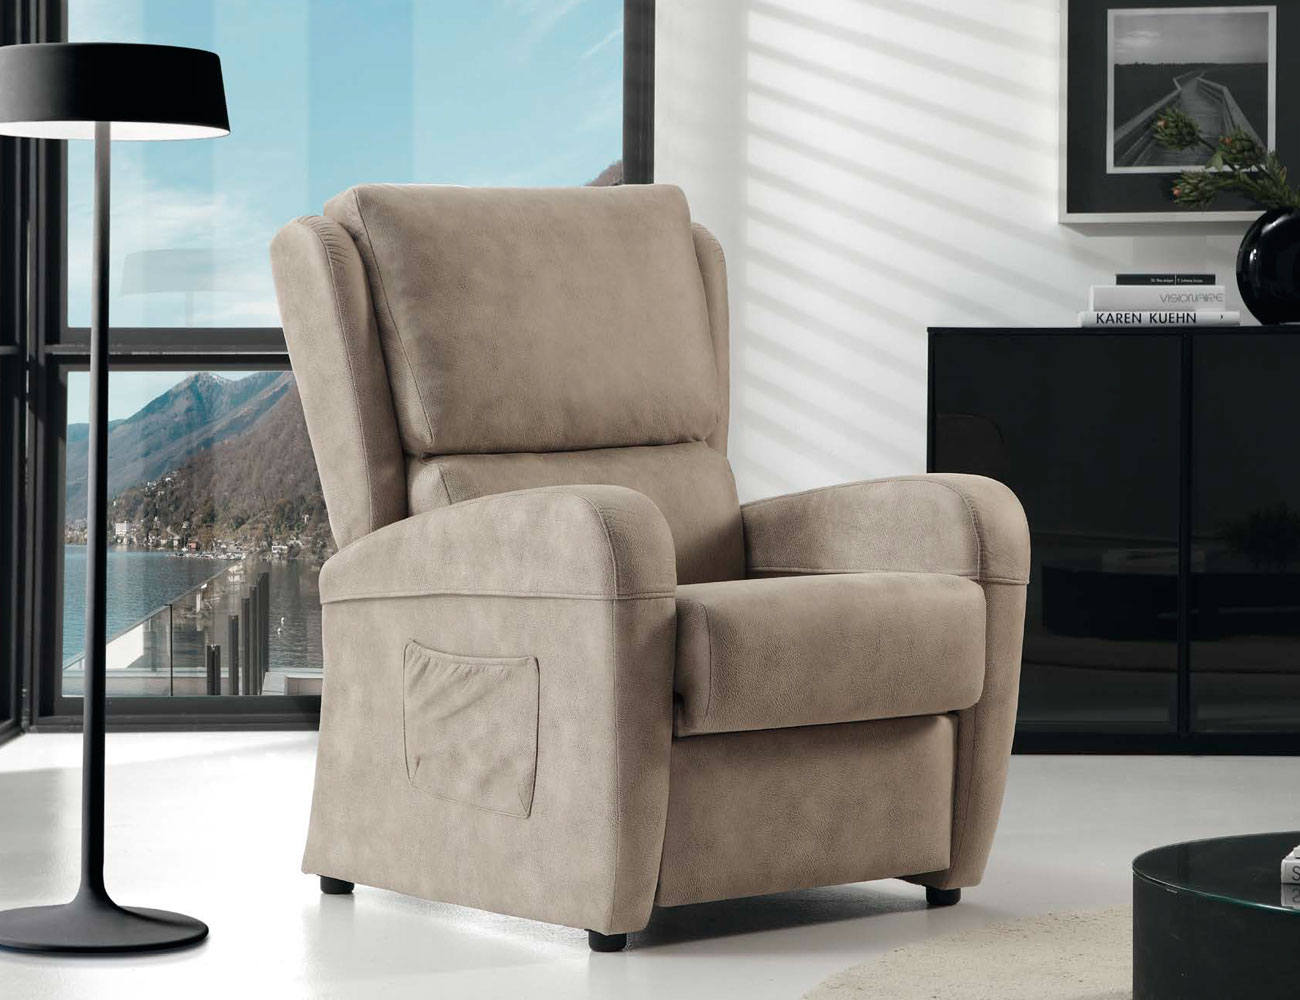 Sillon relax manual jana14